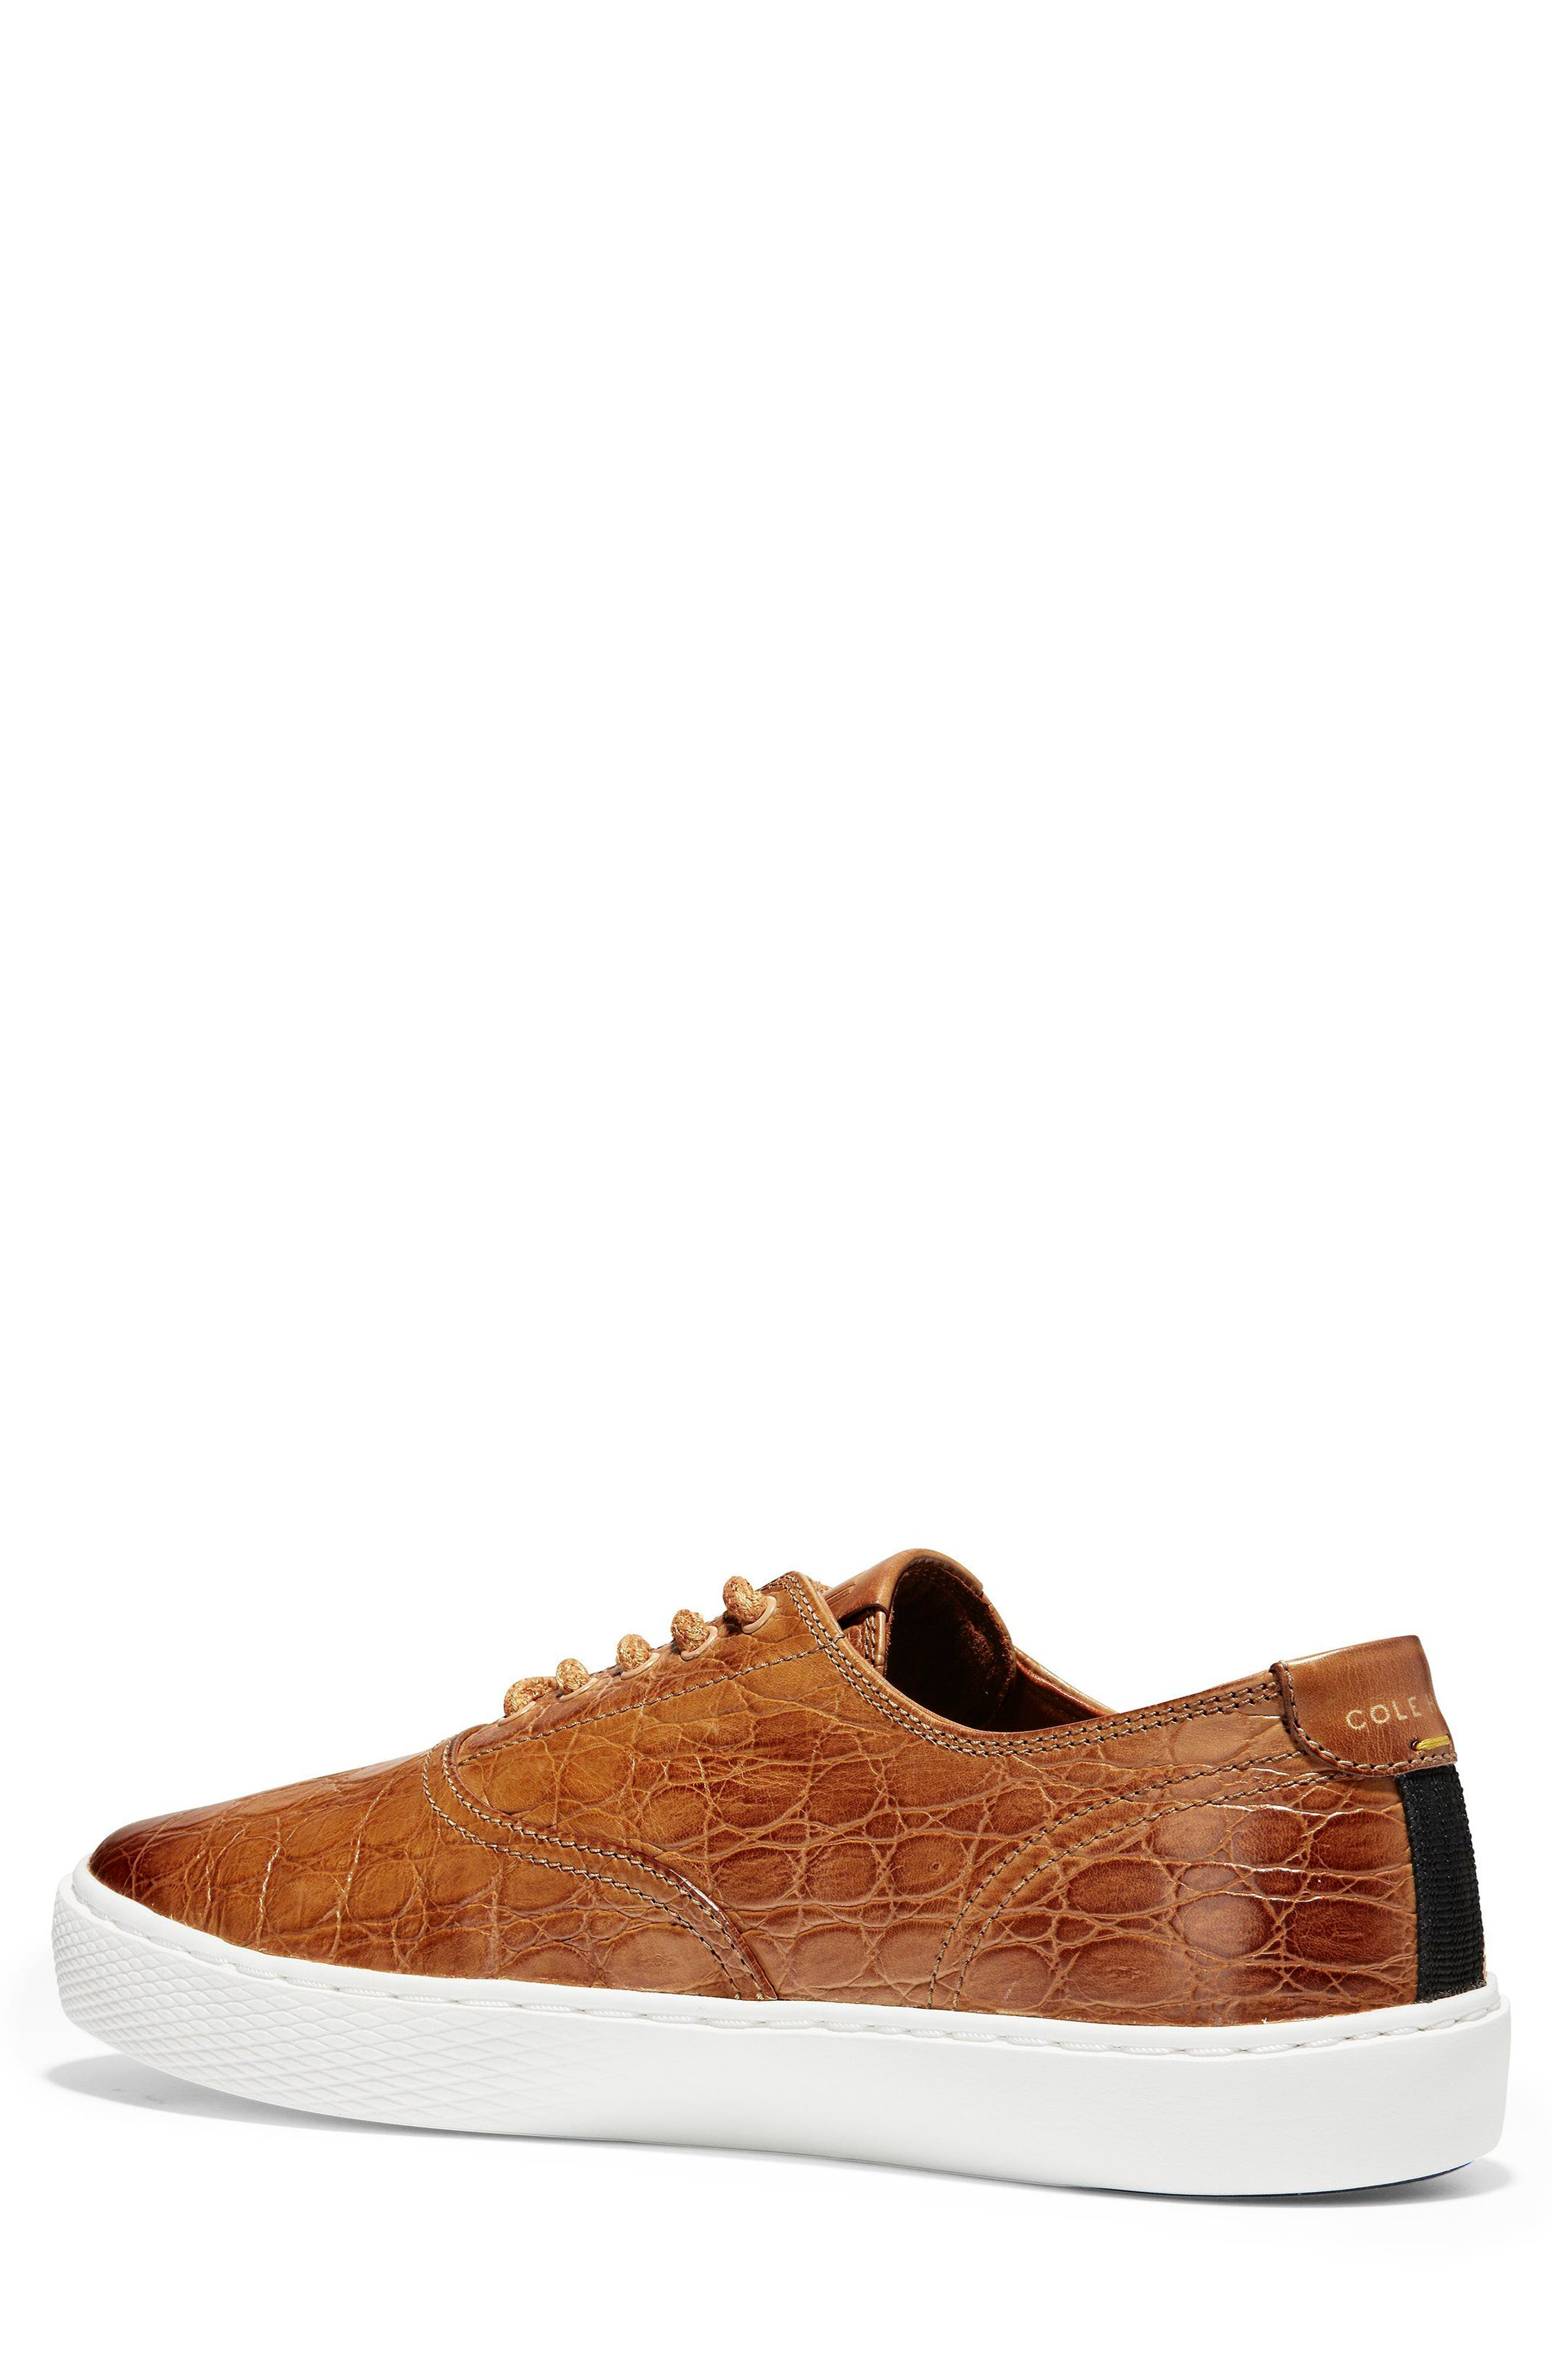 GrandPro Deck Low Top Sneaker,                             Alternate thumbnail 2, color,                             Brown/ White Leather